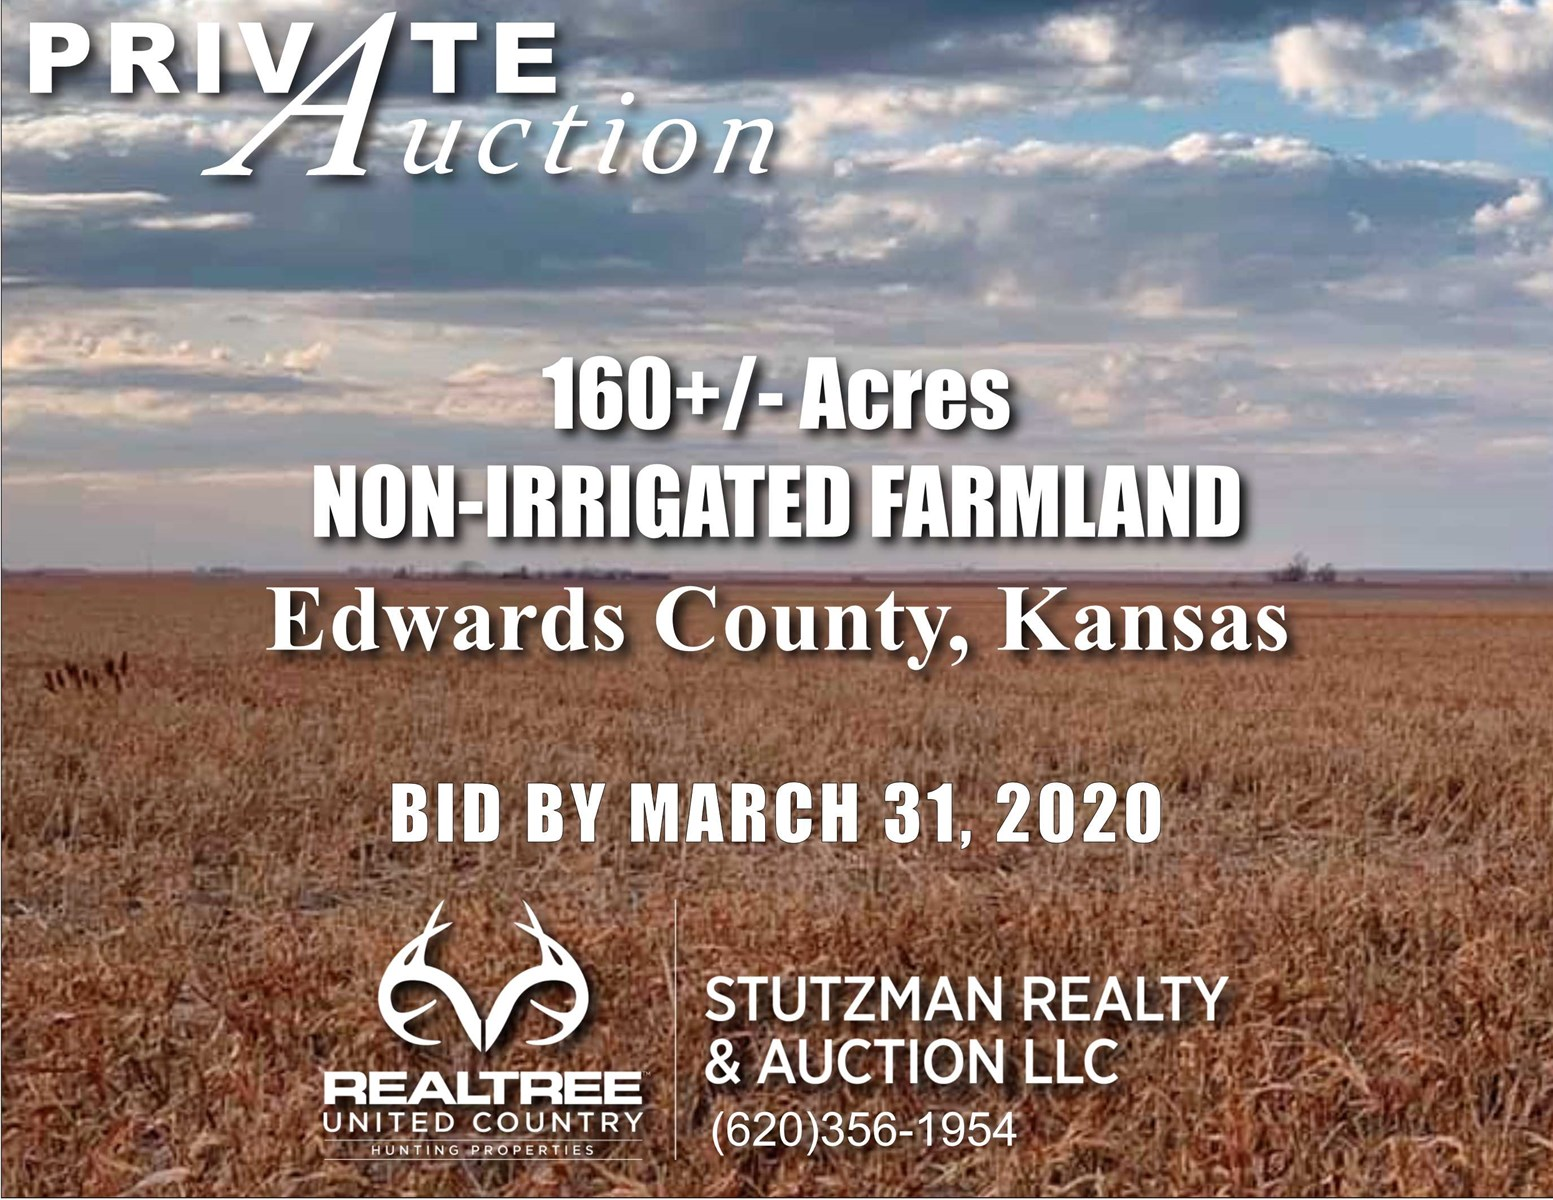 EDWARDS COUNTY KANSAS ~ 160+/- ACRES ~ PRIVATE AUCTION